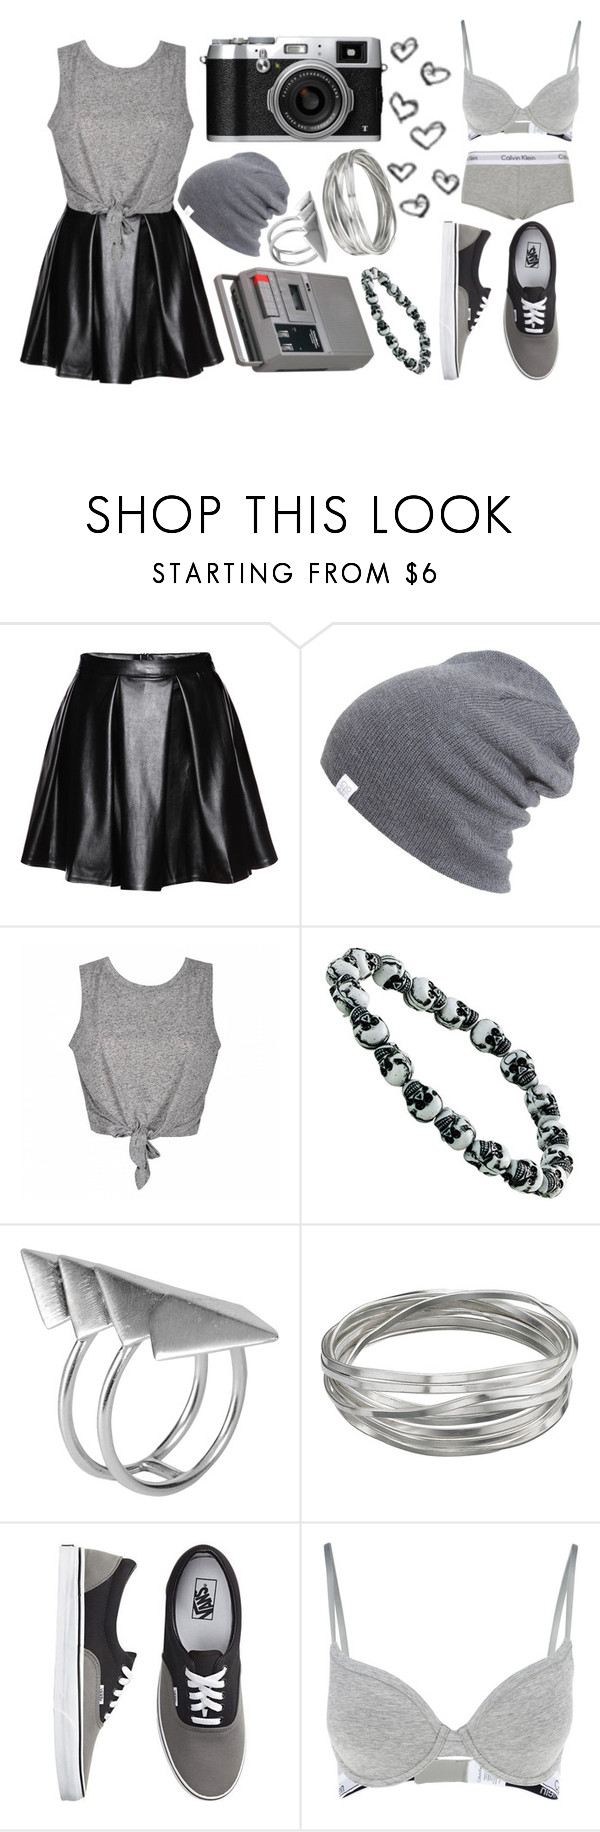 """Grey"" by mariashontz ❤ liked on Polyvore featuring CASSETTE, NESSA, First People First, Whistles, Vans, Calvin Klein and Topshop"